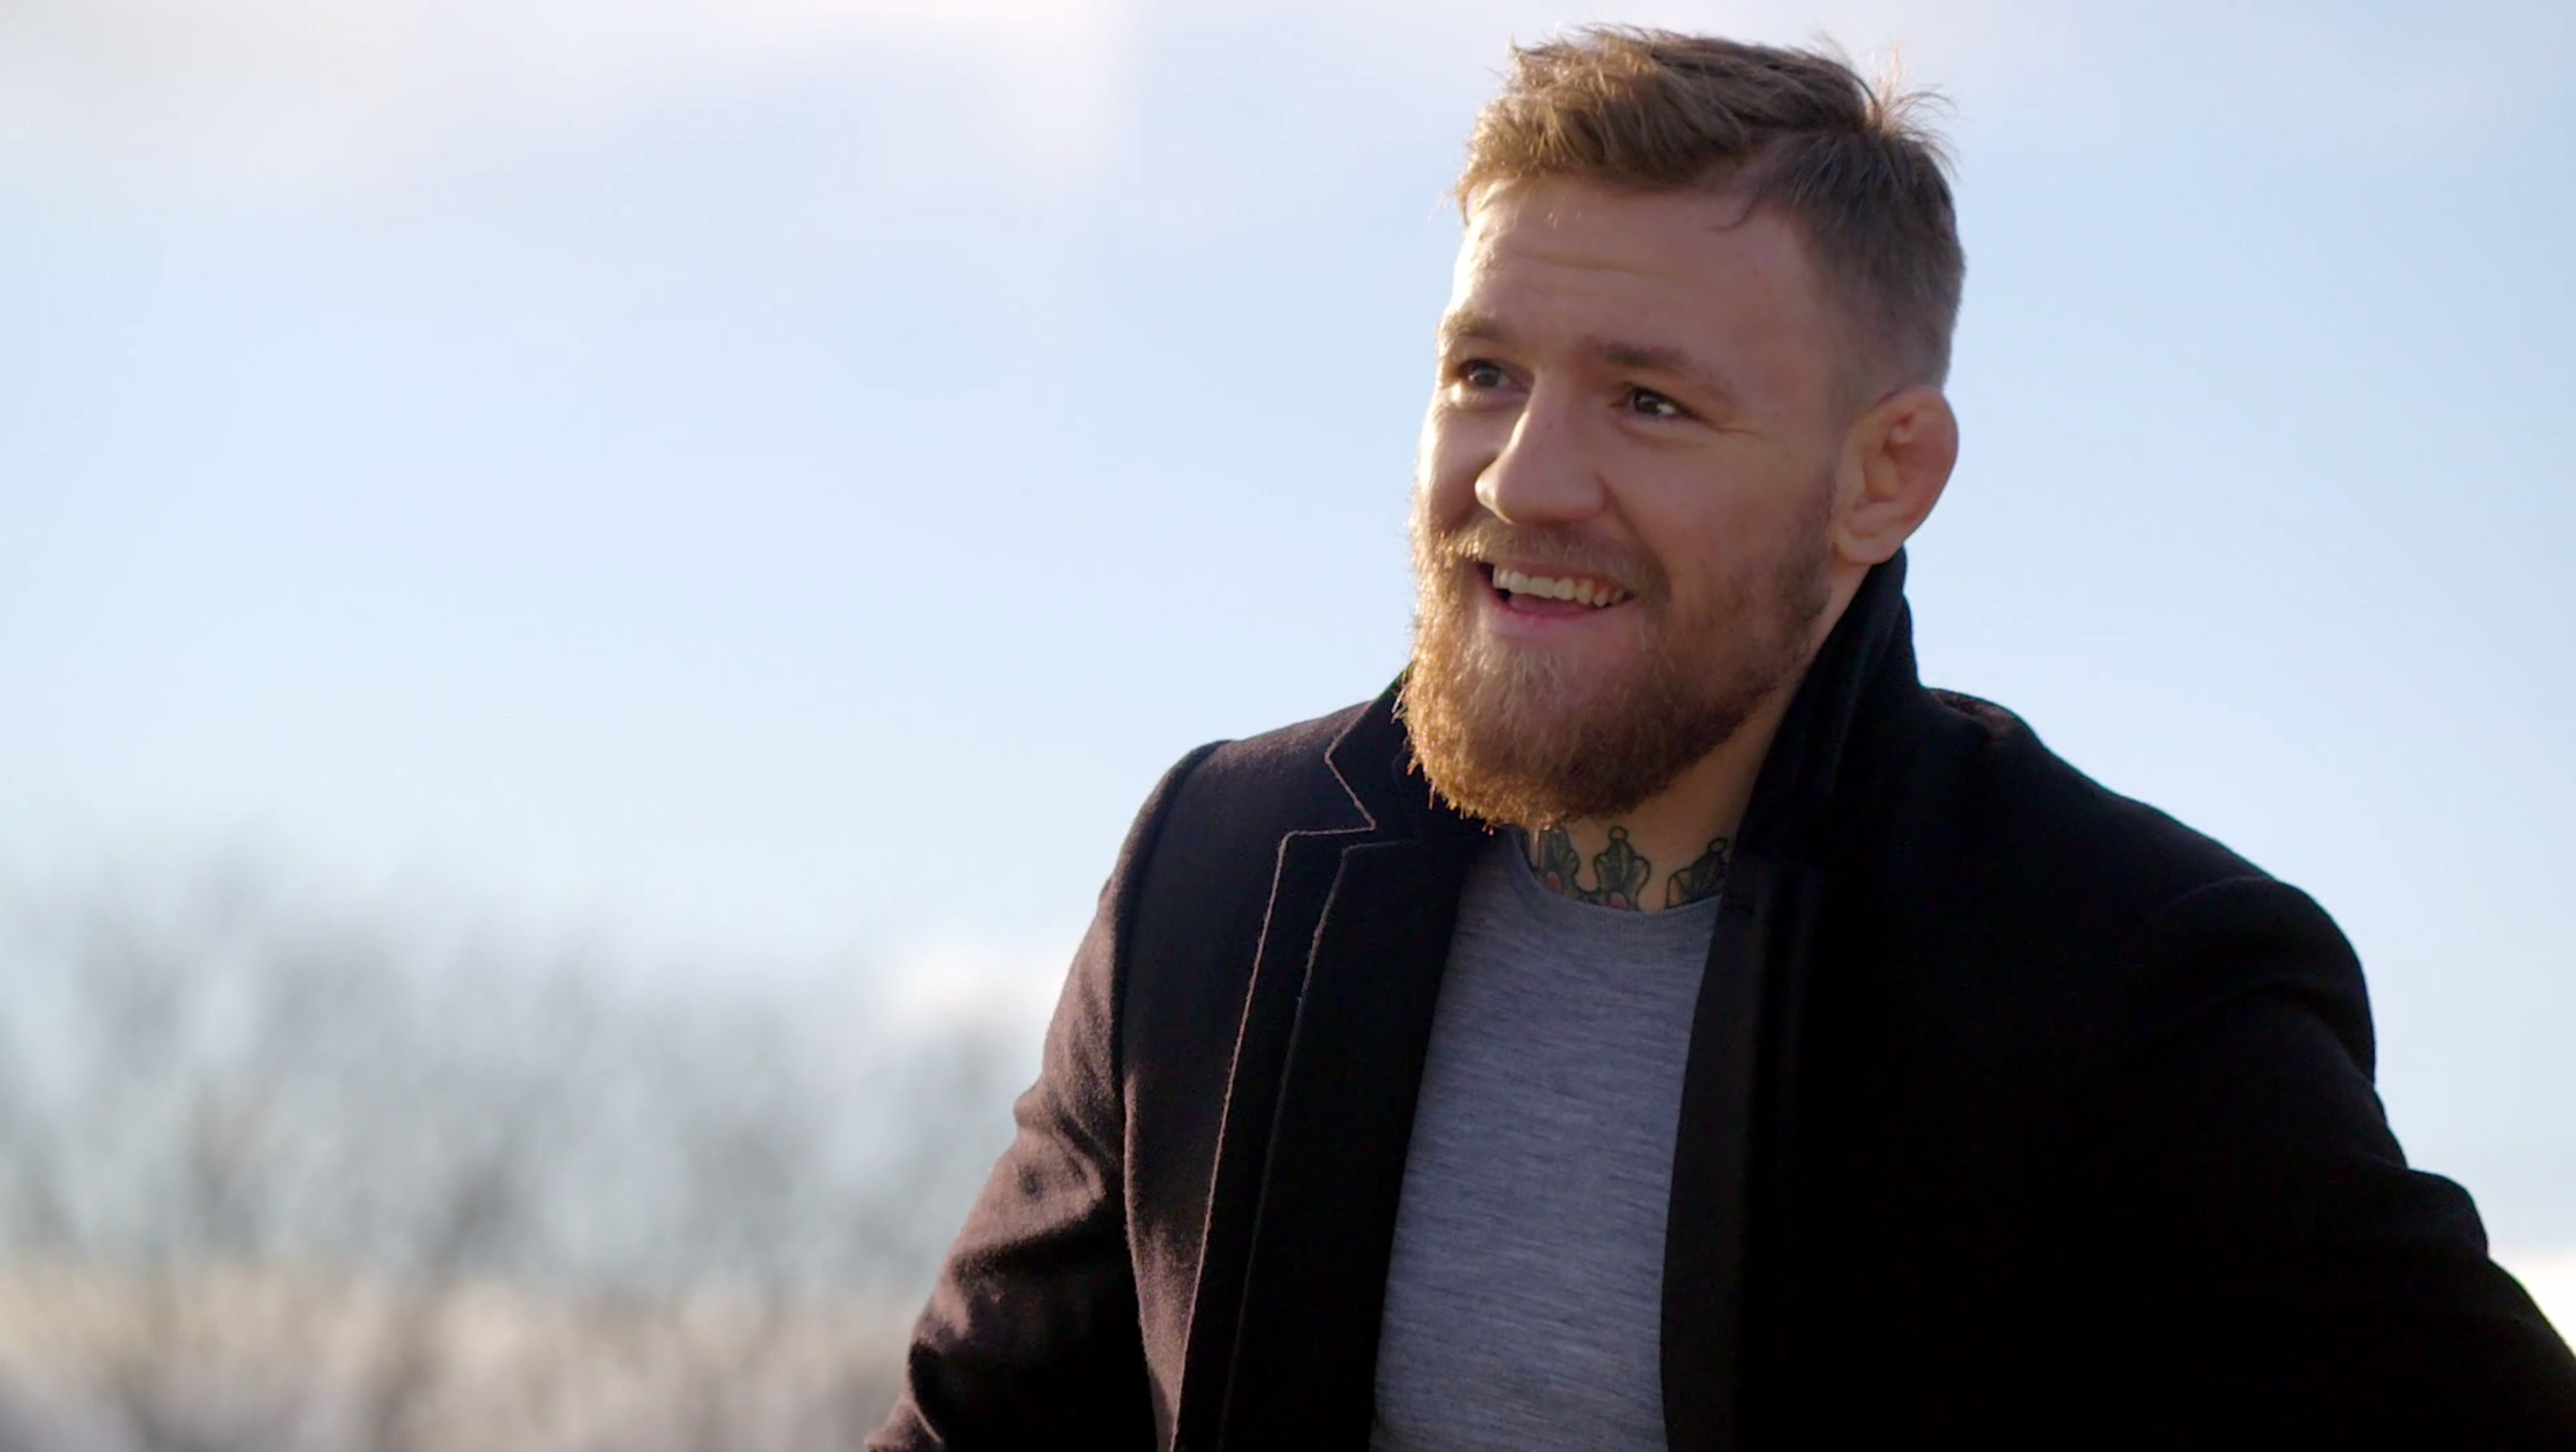 Conor McGregor HD Wallpapers Free Download in High Quality ...